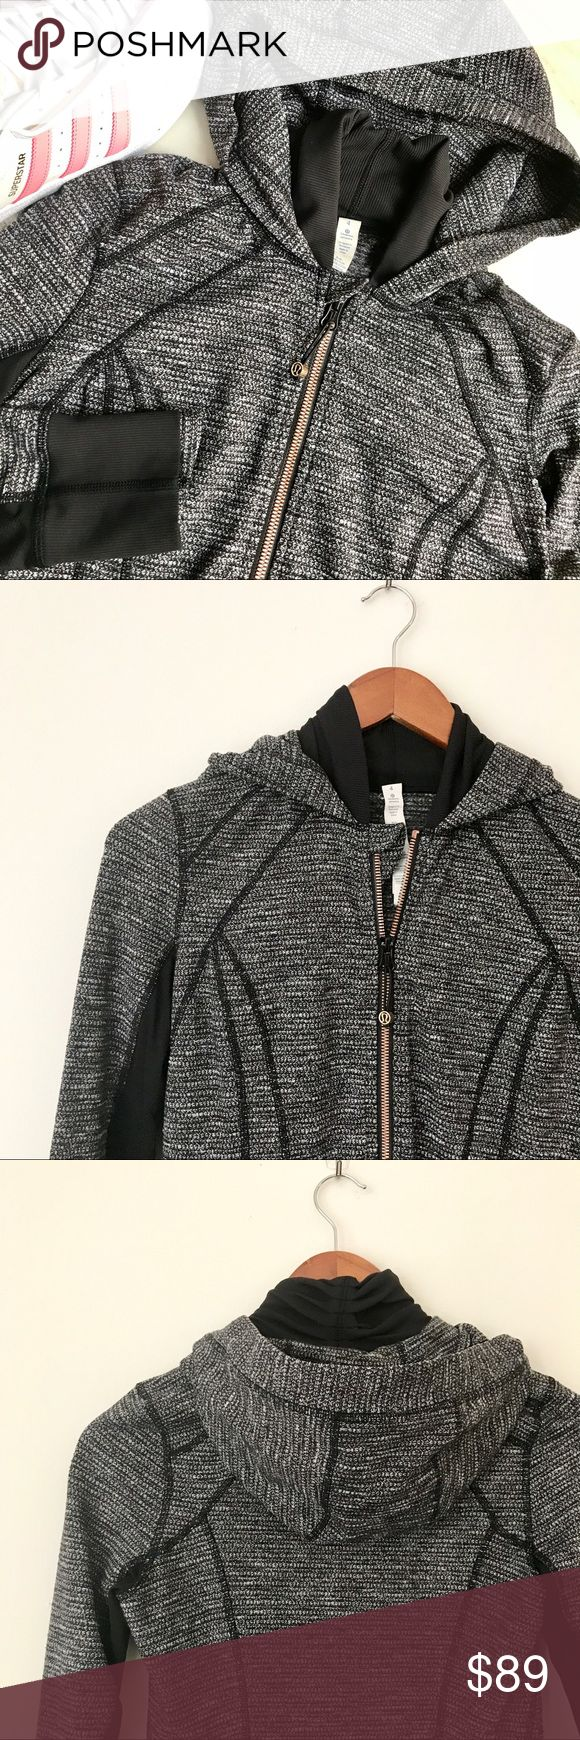 Lululemon athletica long hoodie limited edition * Amazing body fit | long-ass lululemon hoodie  * preloved in excellent condition (no flaws) lululemon athletica Jackets & Coats